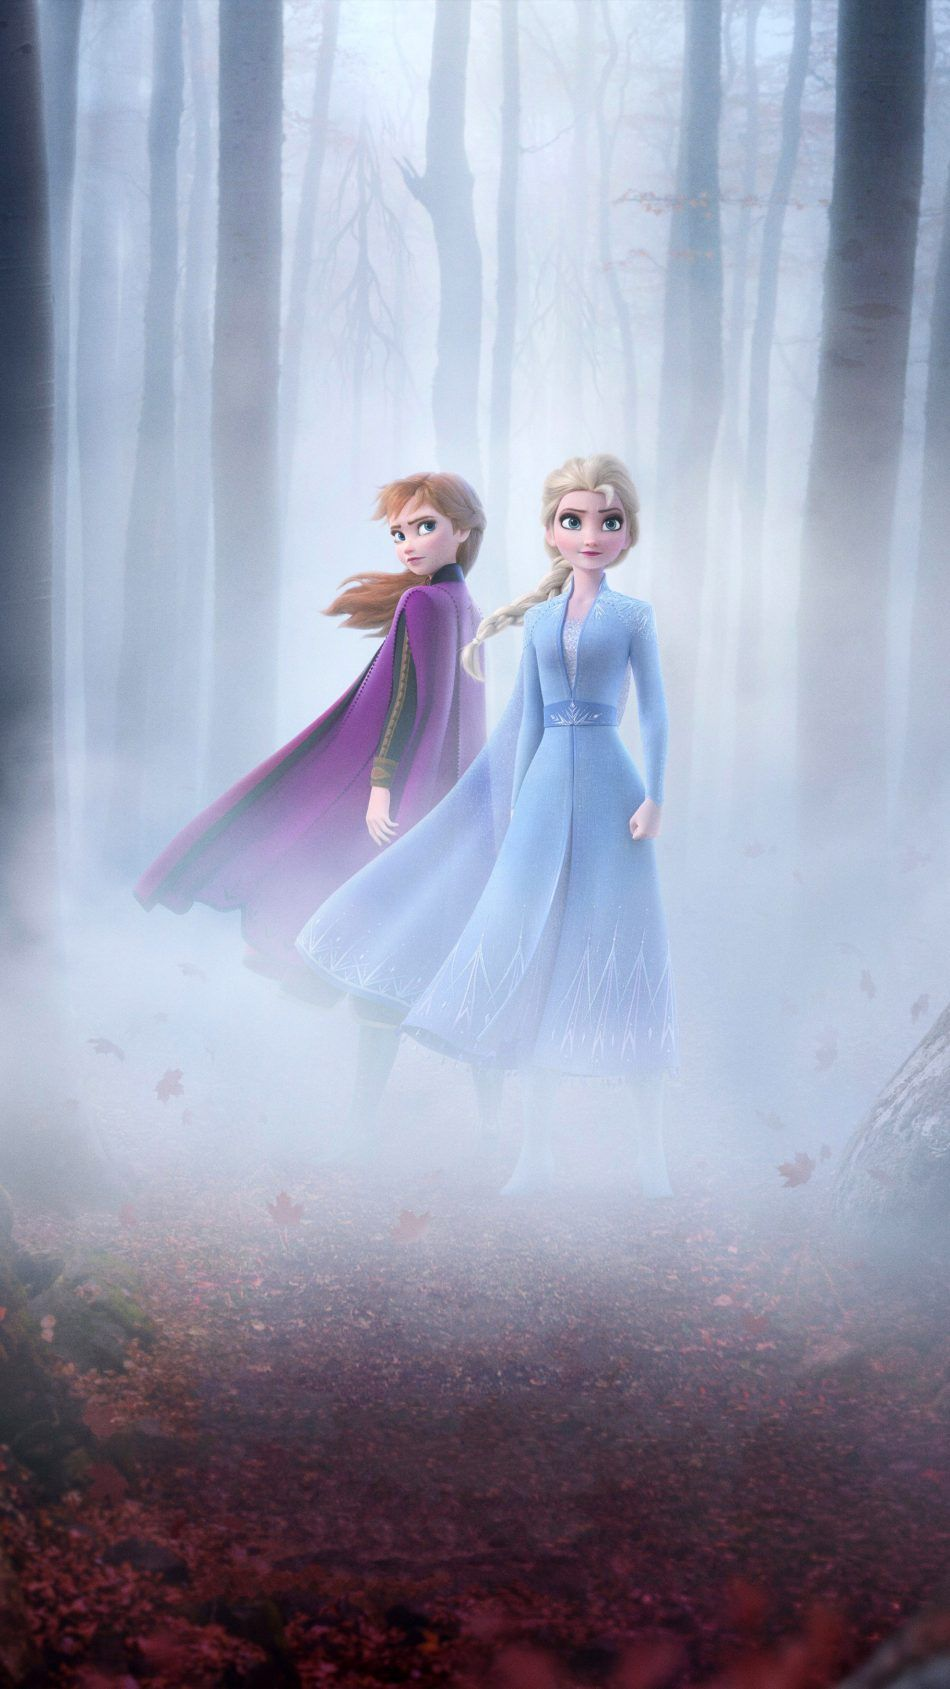 Frozen 2 Wallpapers Top Free Frozen 2 Backgrounds